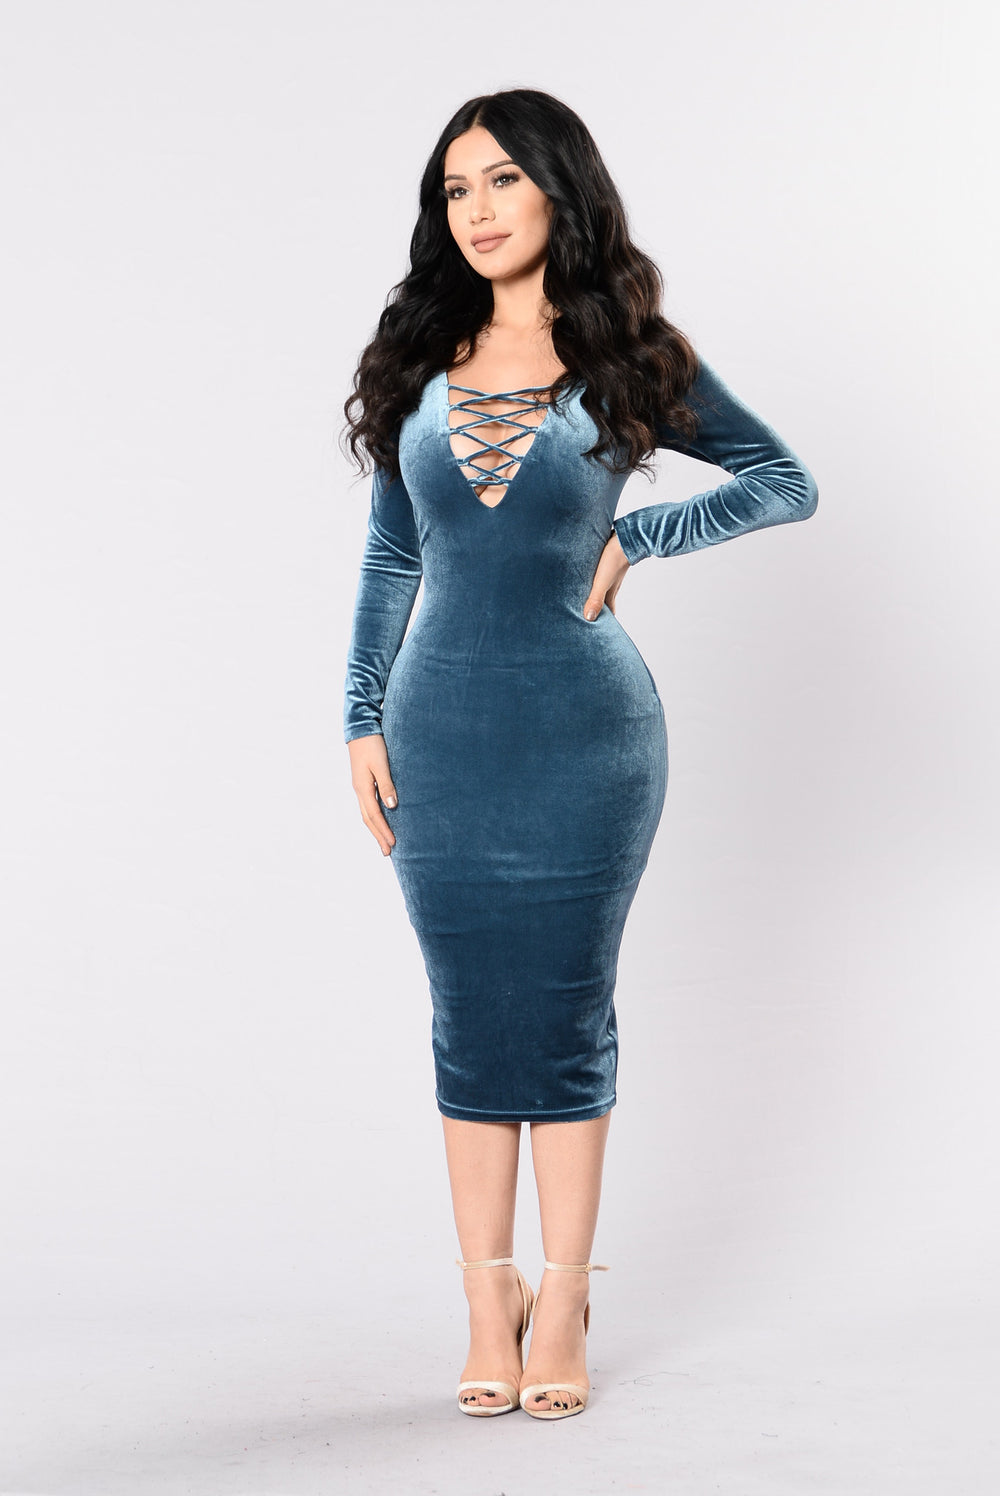 Miss Independent Dress - Teal